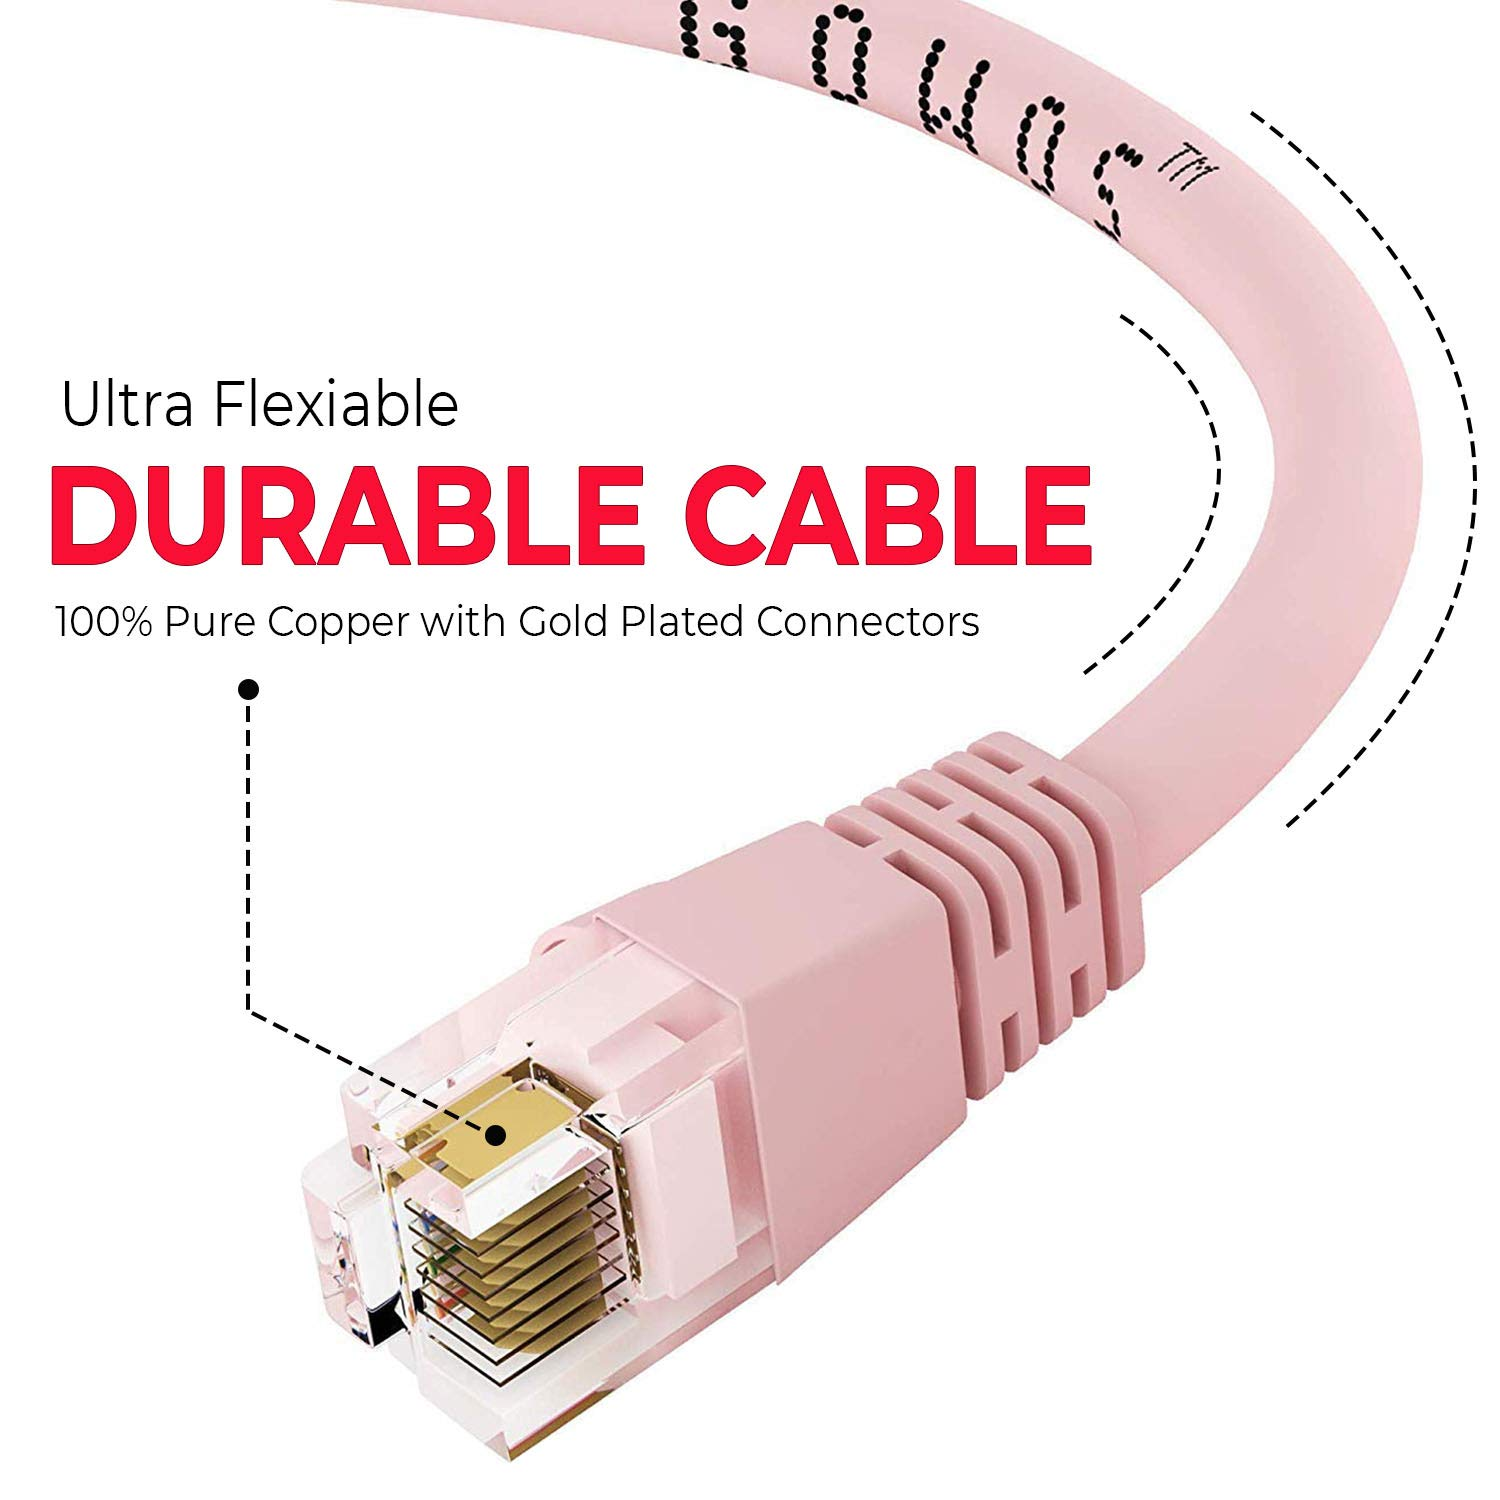 50-Pack - 25 Feet 350MHz Purple 24AWG Network Cable with Gold Plated RJ45 Snagless//Molded//Booted Connector 1Gigabit//Sec High Speed LAN Internet//Patch Cable GOWOS Cat5e Ethernet Cable